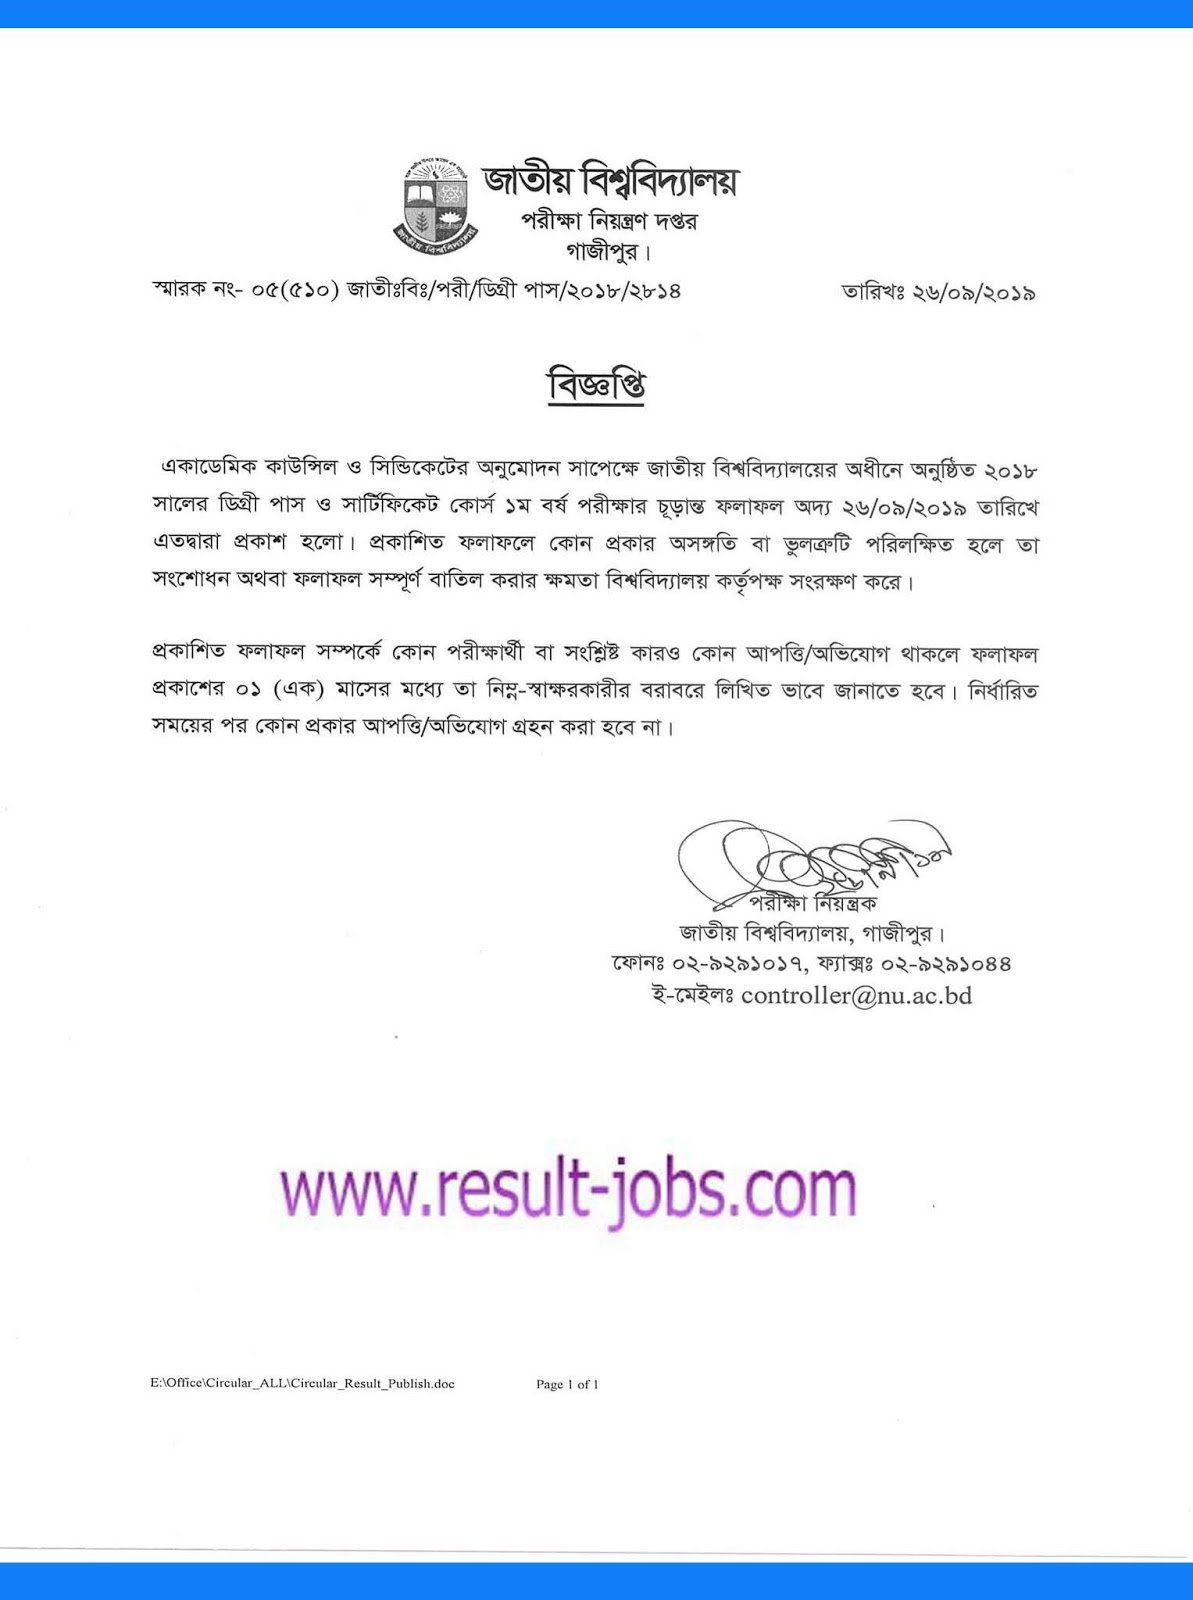 onours 3rd year result,degree 3rd year result,national university admission,nu honours 4th year result,national university bangladesh result,national university result 2019,bangladesh national university result